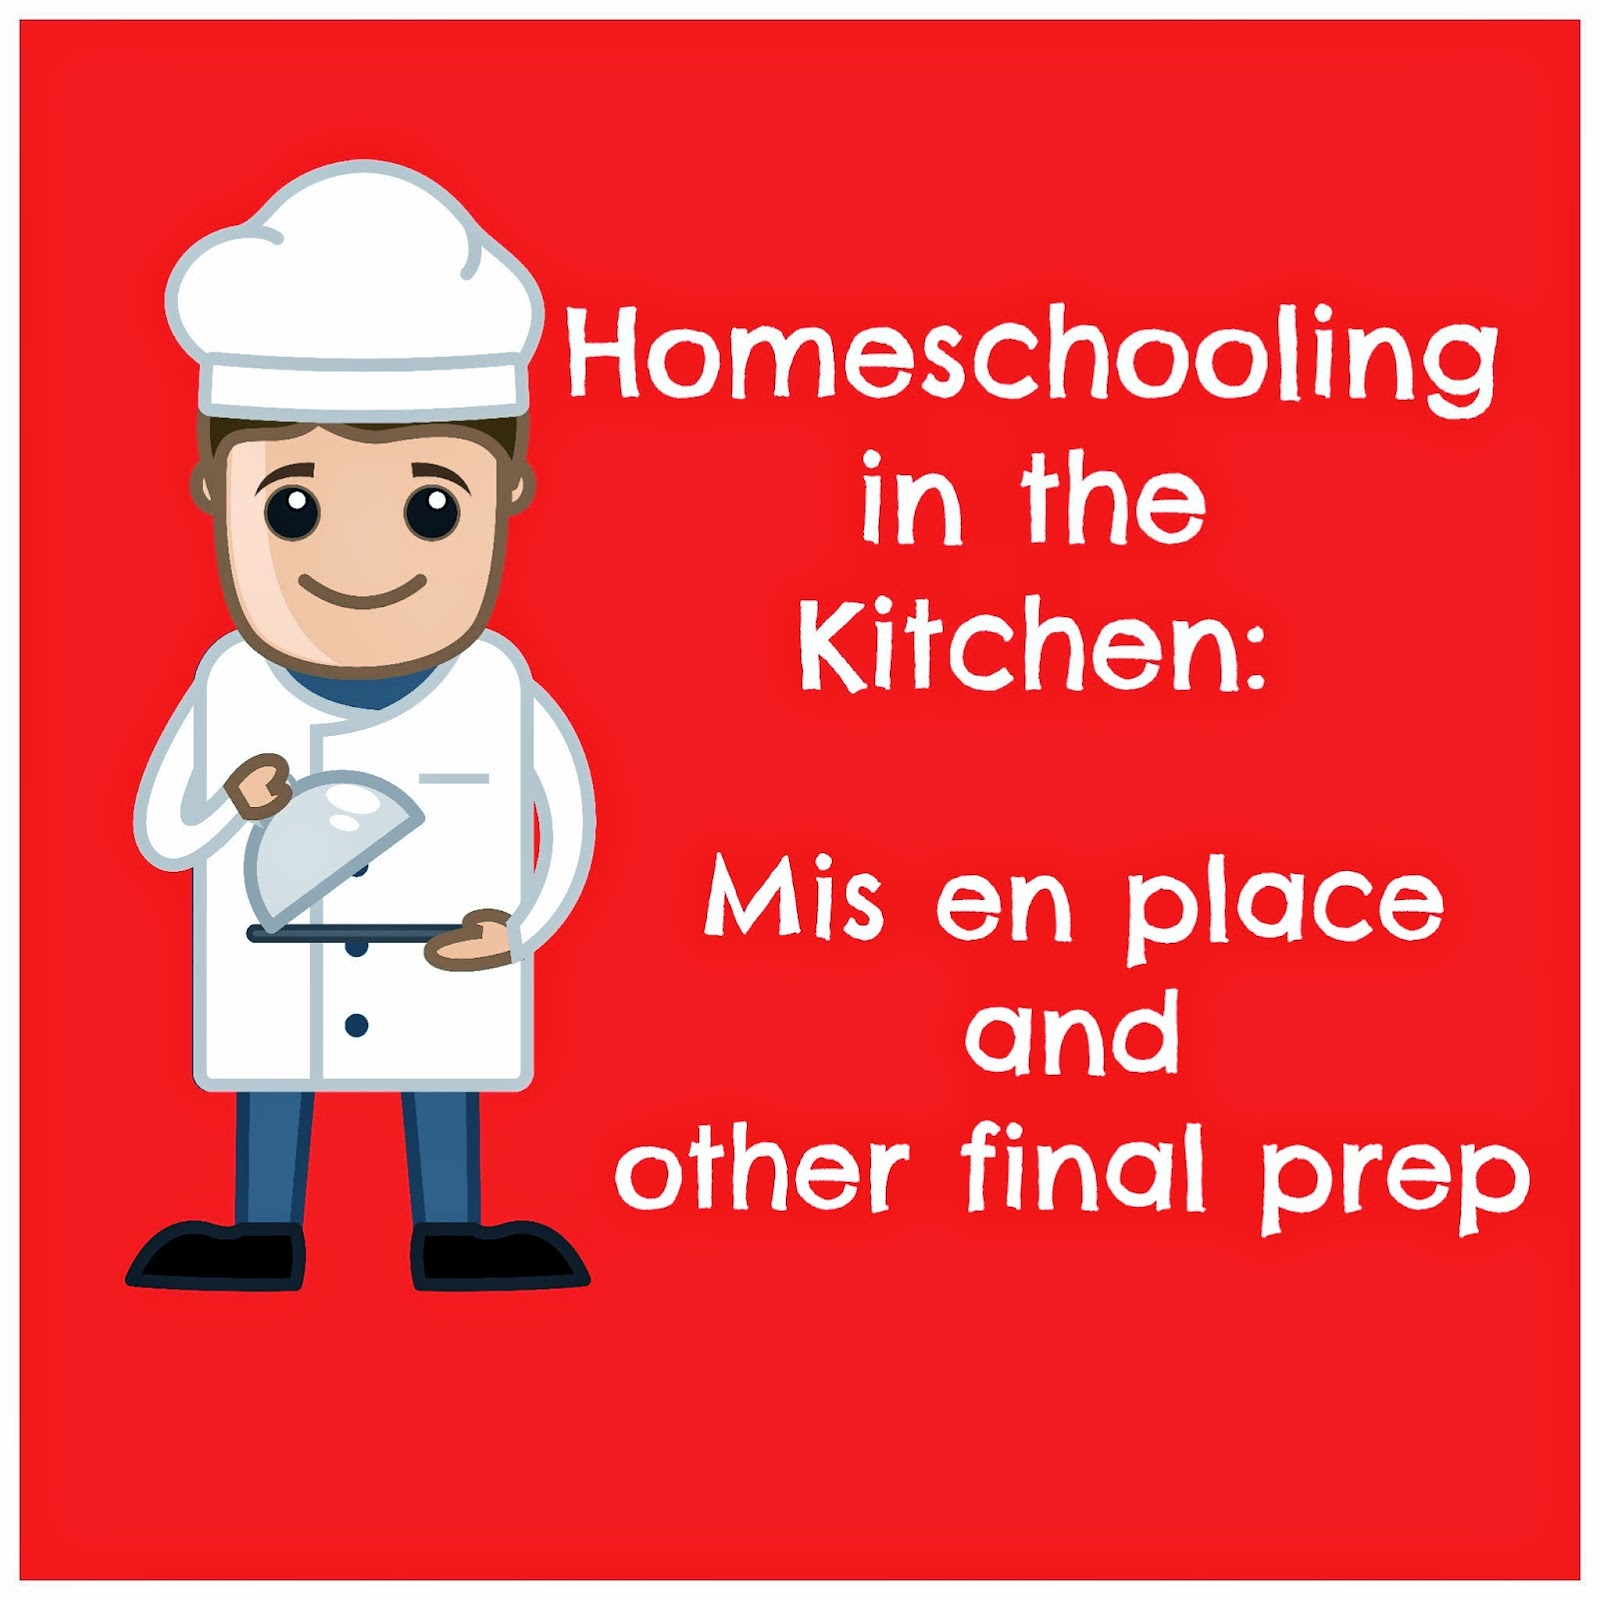 Homeschooling in the Kitchen: Mis en place and other final prep